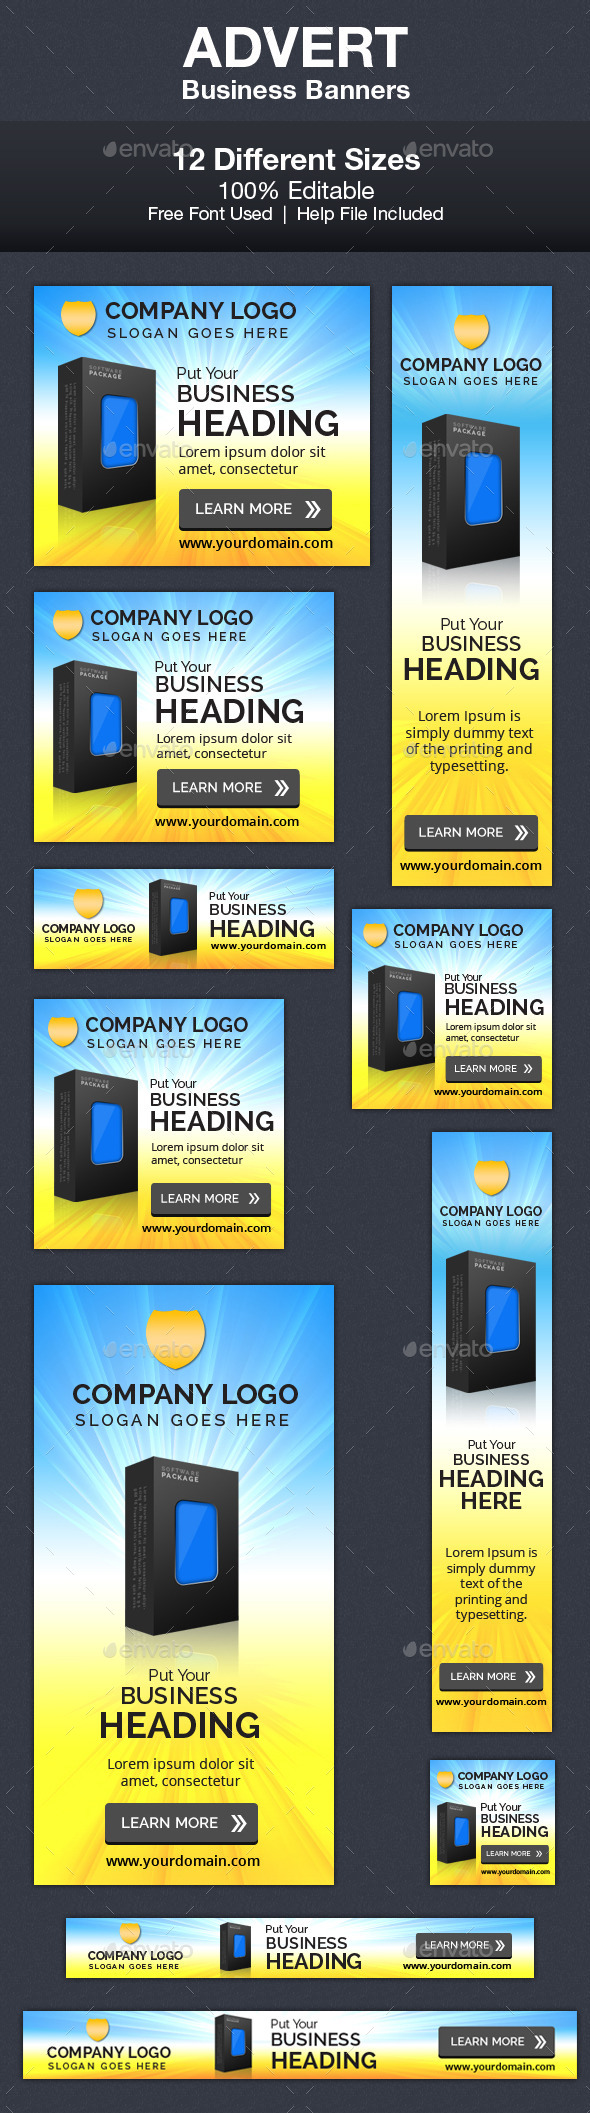 Advert Business Banners - Banners & Ads Web Elements